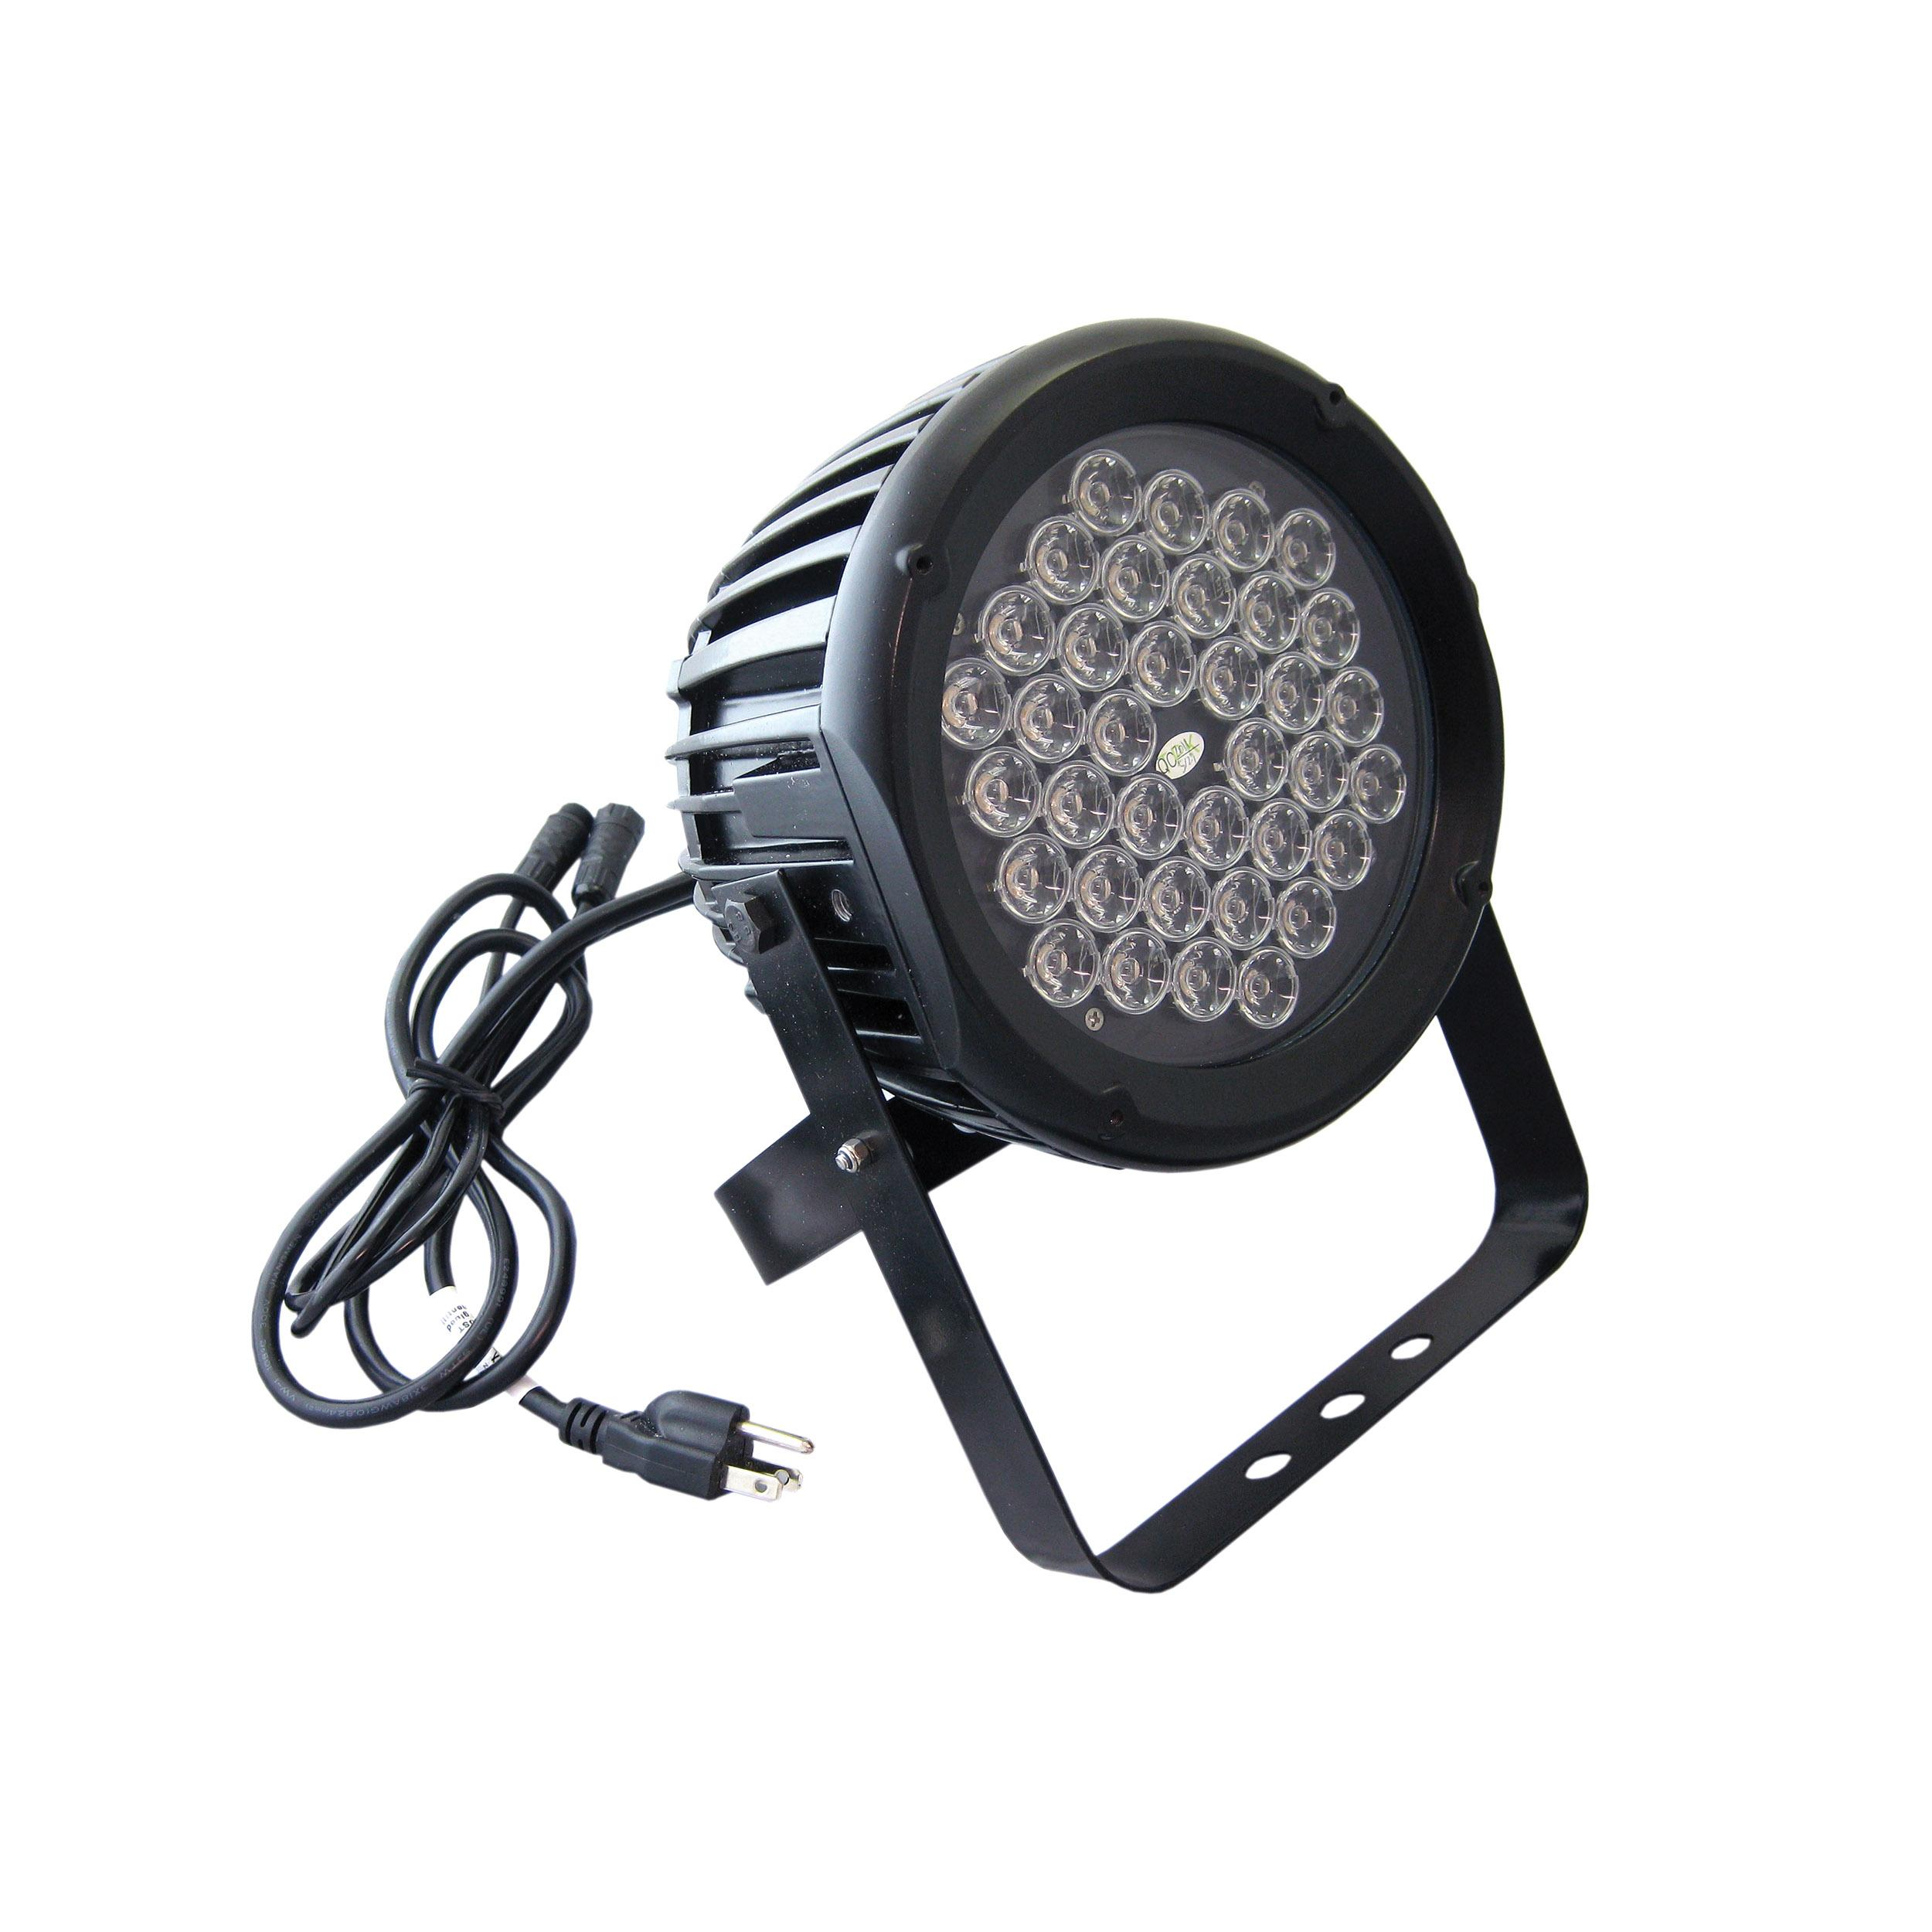 SPHERE-STAR PAR 64 LED Wall Washer